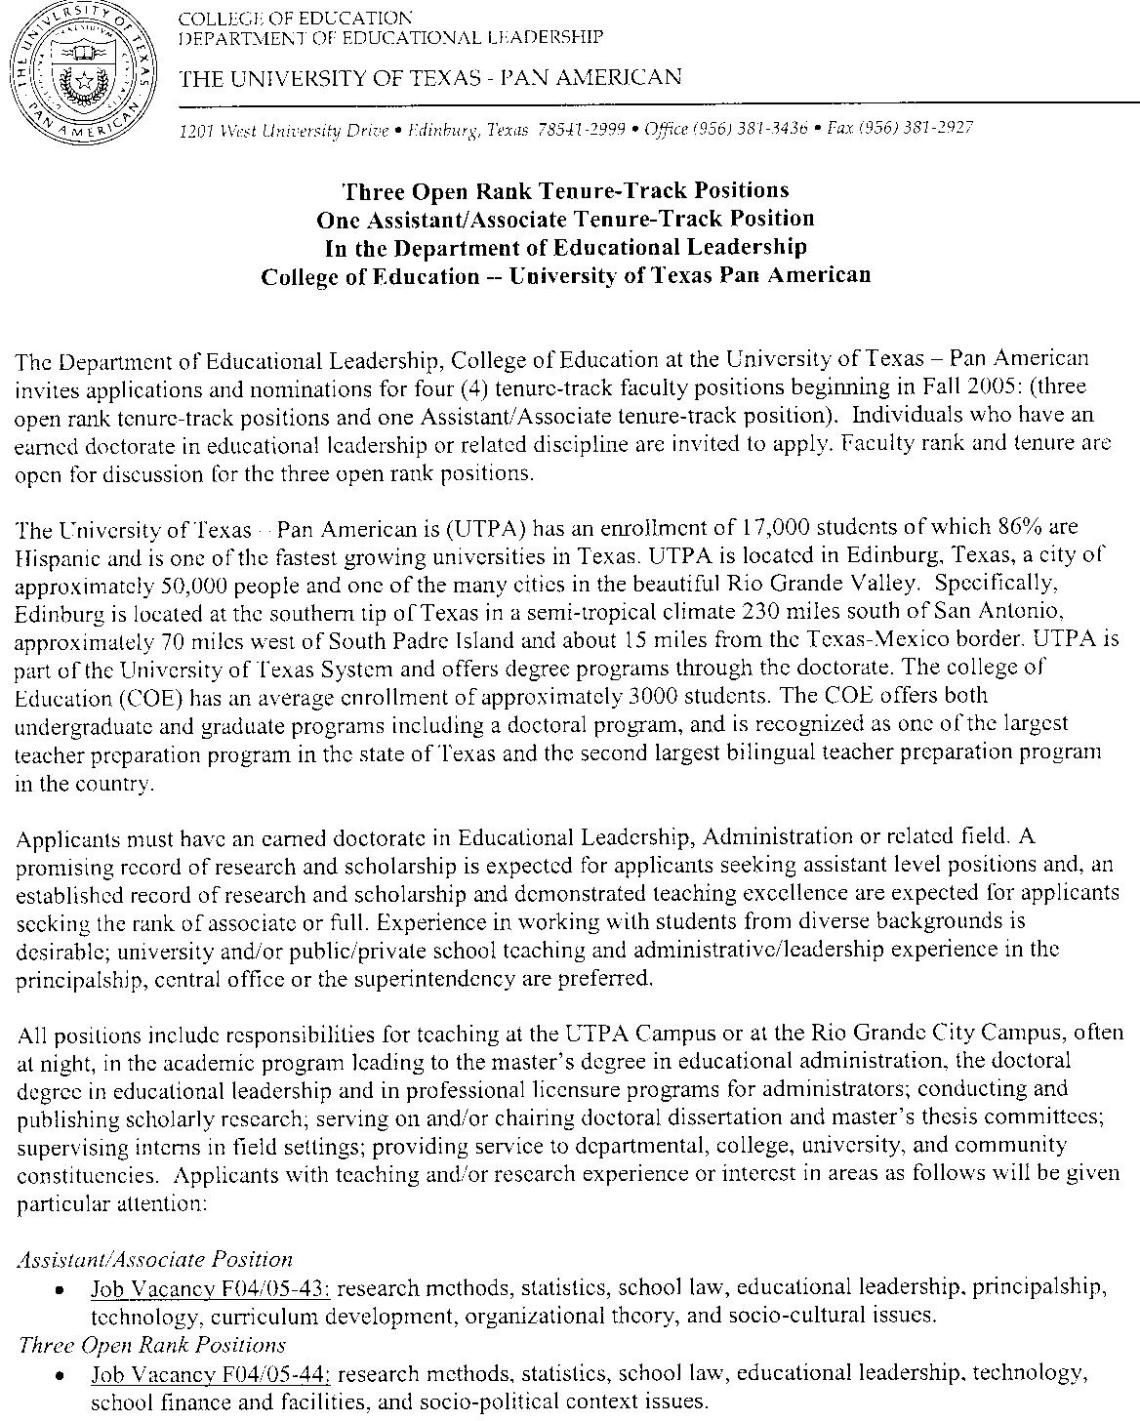 cover letter for postdoctoral fellowship Application materials for faculty positions for biomedical scientists: research- focused position: sample i (cover letter, cv, teaching statement)added september 2017 sample ii (cover letter, cv, research statement, teaching statement)added september 2017 sample iii (research statement)added september 2017.